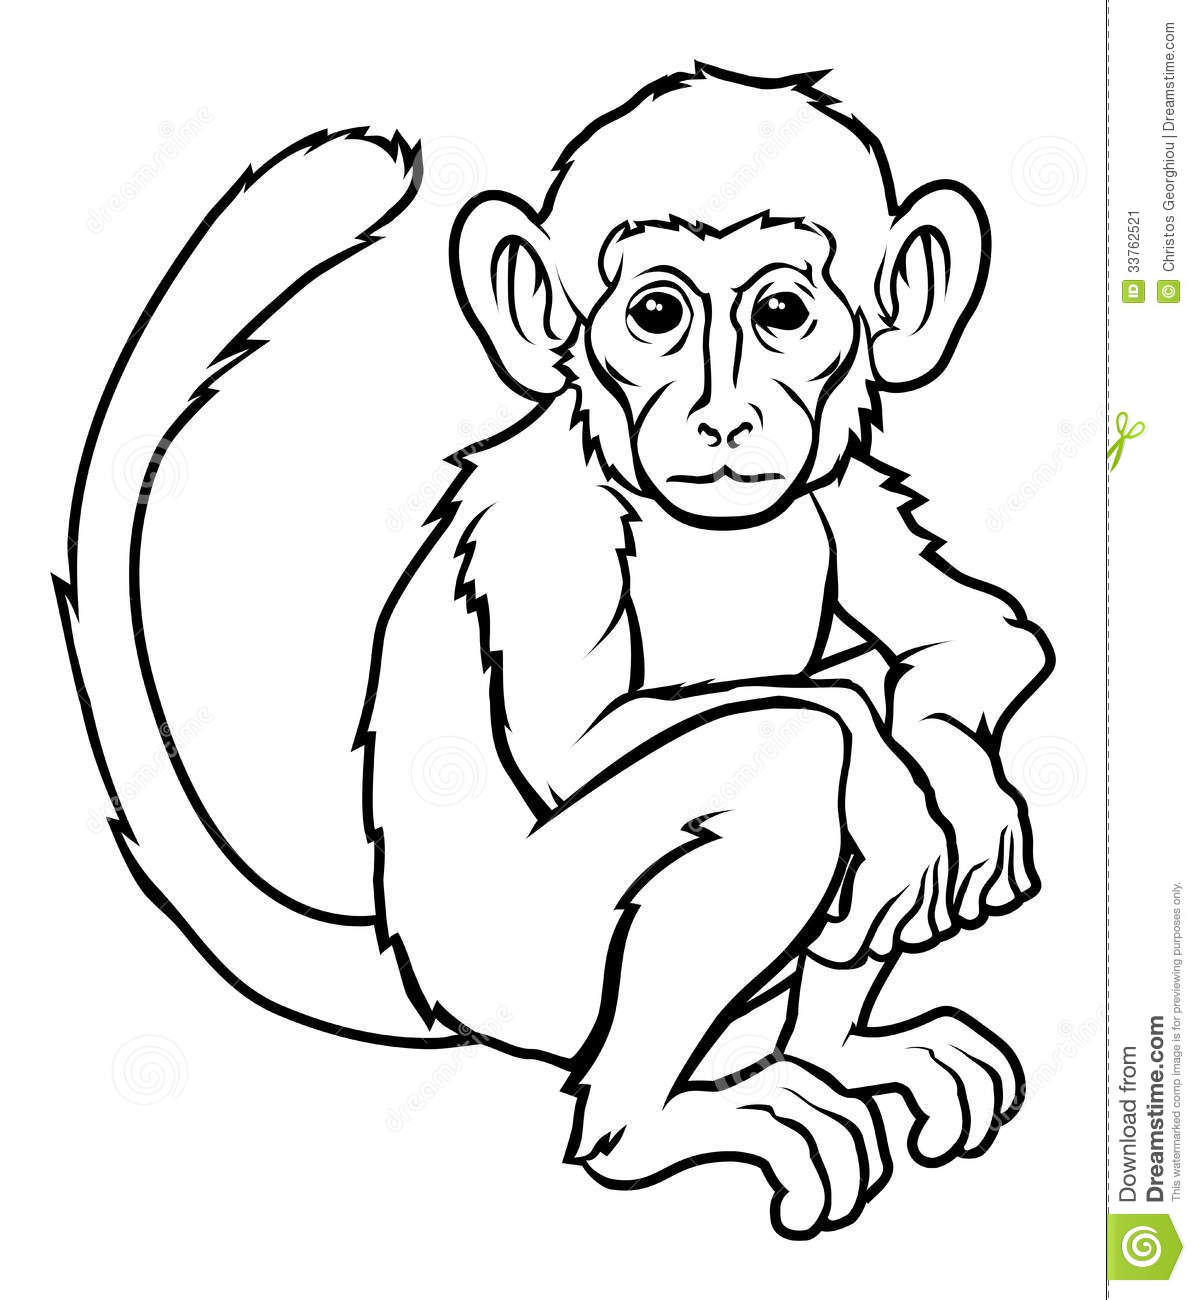 Monkey Line Drawing at GetDrawings | Free download